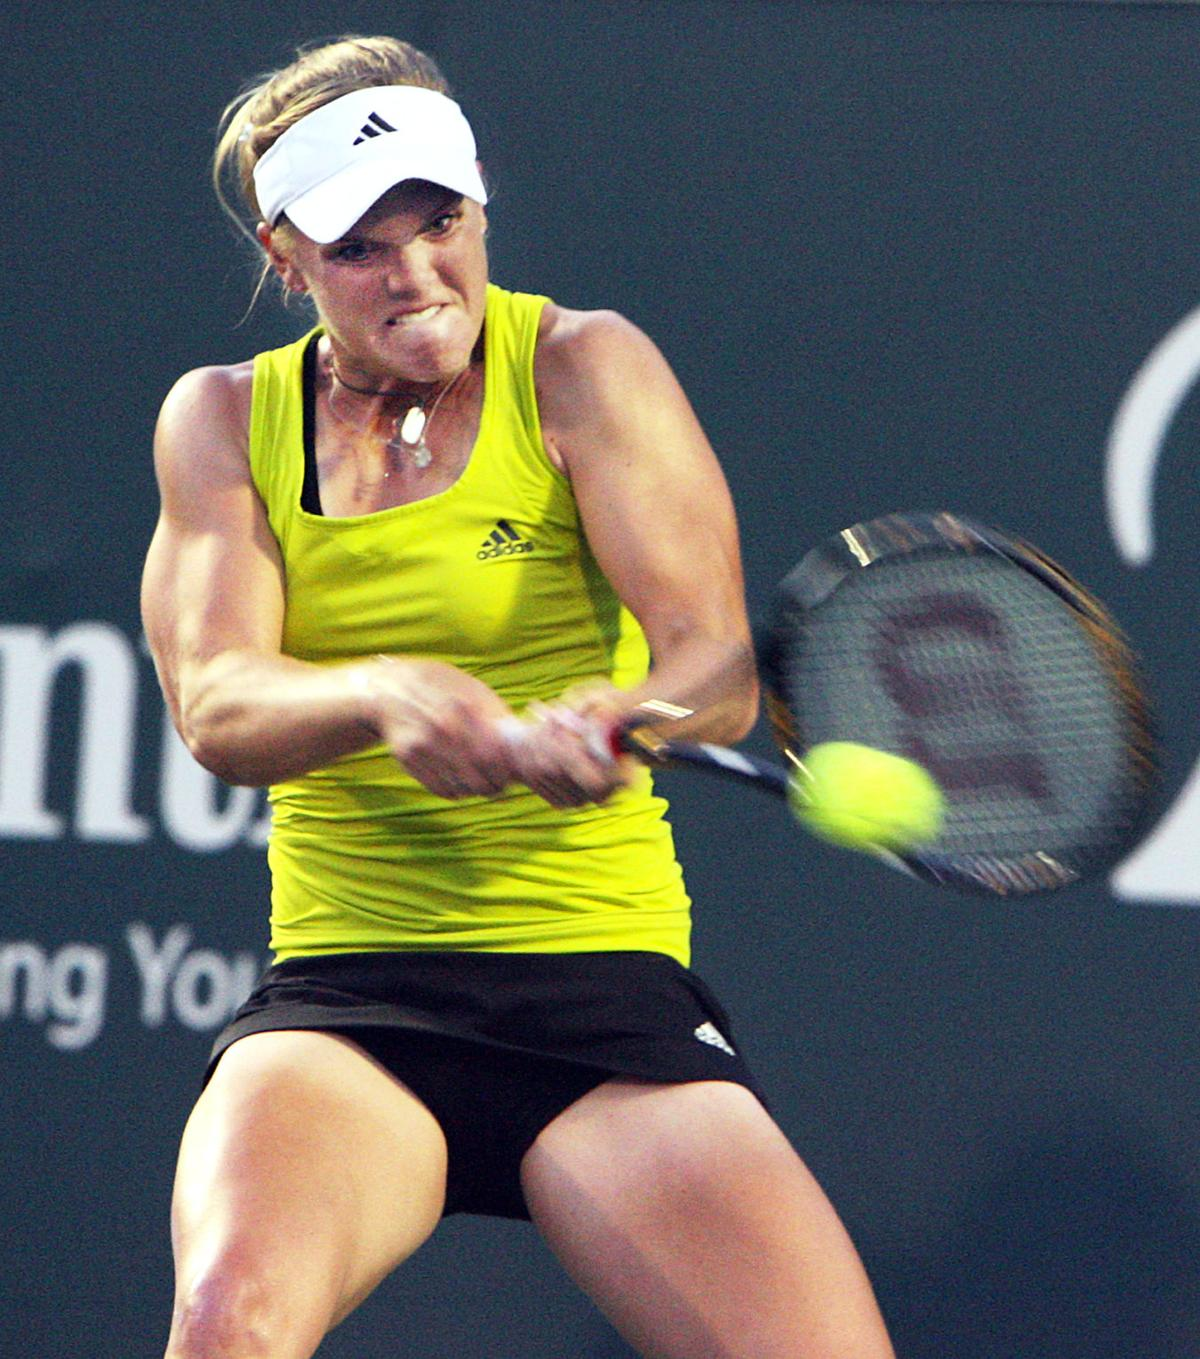 Oudin's star still on the rise